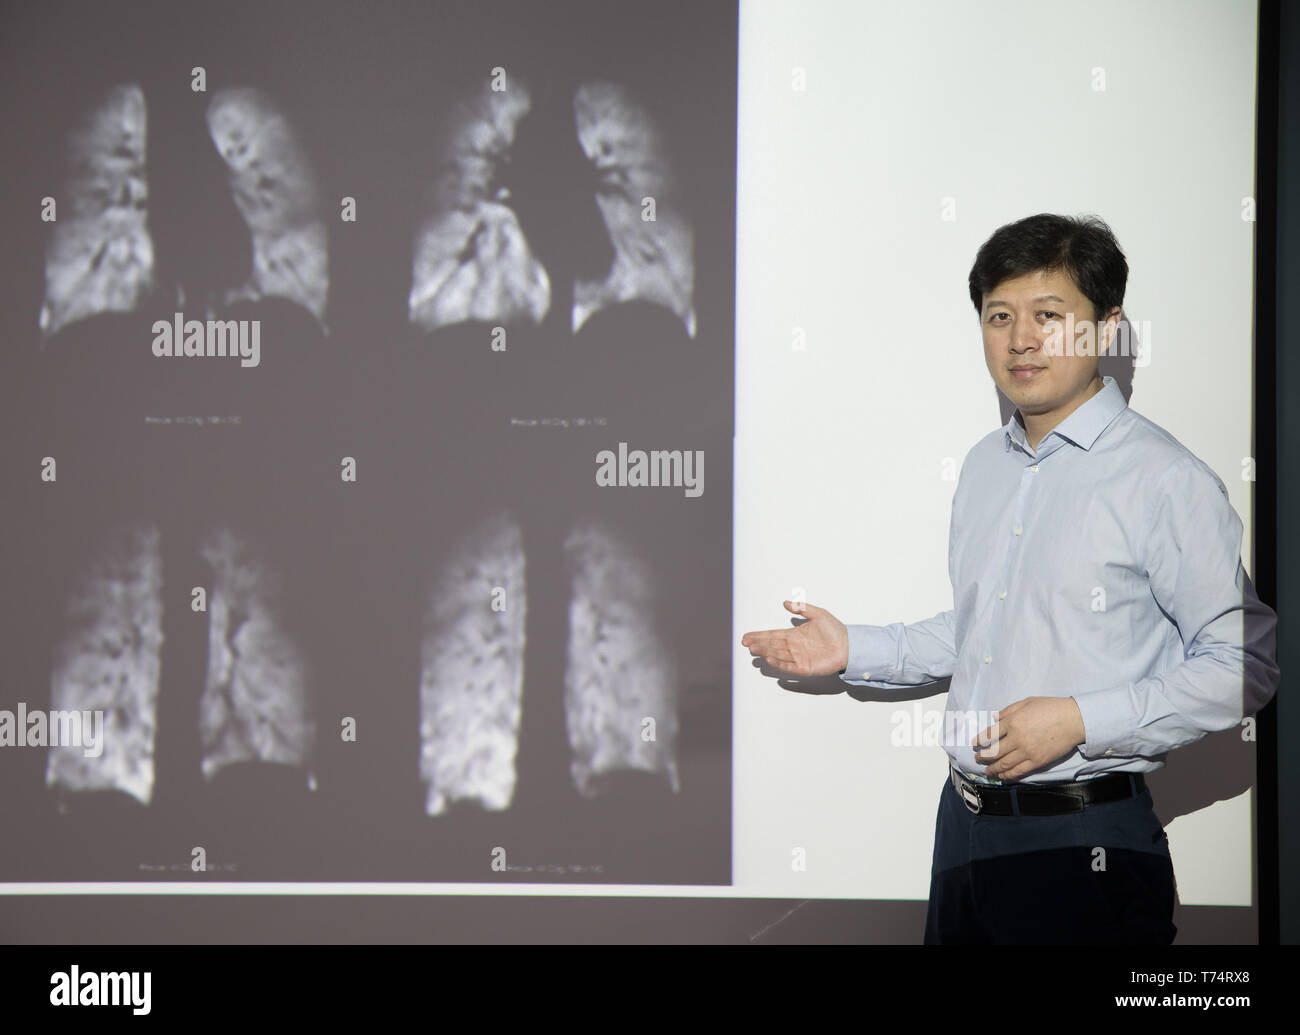 (190504) -- WUHAN, May 4, 2019 (Xinhua) -- Zhou Xin poses for a photo with human lung magnetic resonance images at Wuhan Institute of Physics and Mathematics of Chinese Academy of Sciences in Wuhan, capital of central China's Hubei Province, April 19, 2019. Professor Zhou Xin is the deputy director of Wuhan Institute of Physics and Mathematics of Chinese Academy of Sciences, State Key Laboratory of Magnetic Resonance and Atomic and Molecular Physics, and National Center for Magnetic Resonance in Wuhan. He is interested in ultrasensitive magnetic resonance imaging (MRI) instruments, techniques  - Stock Image